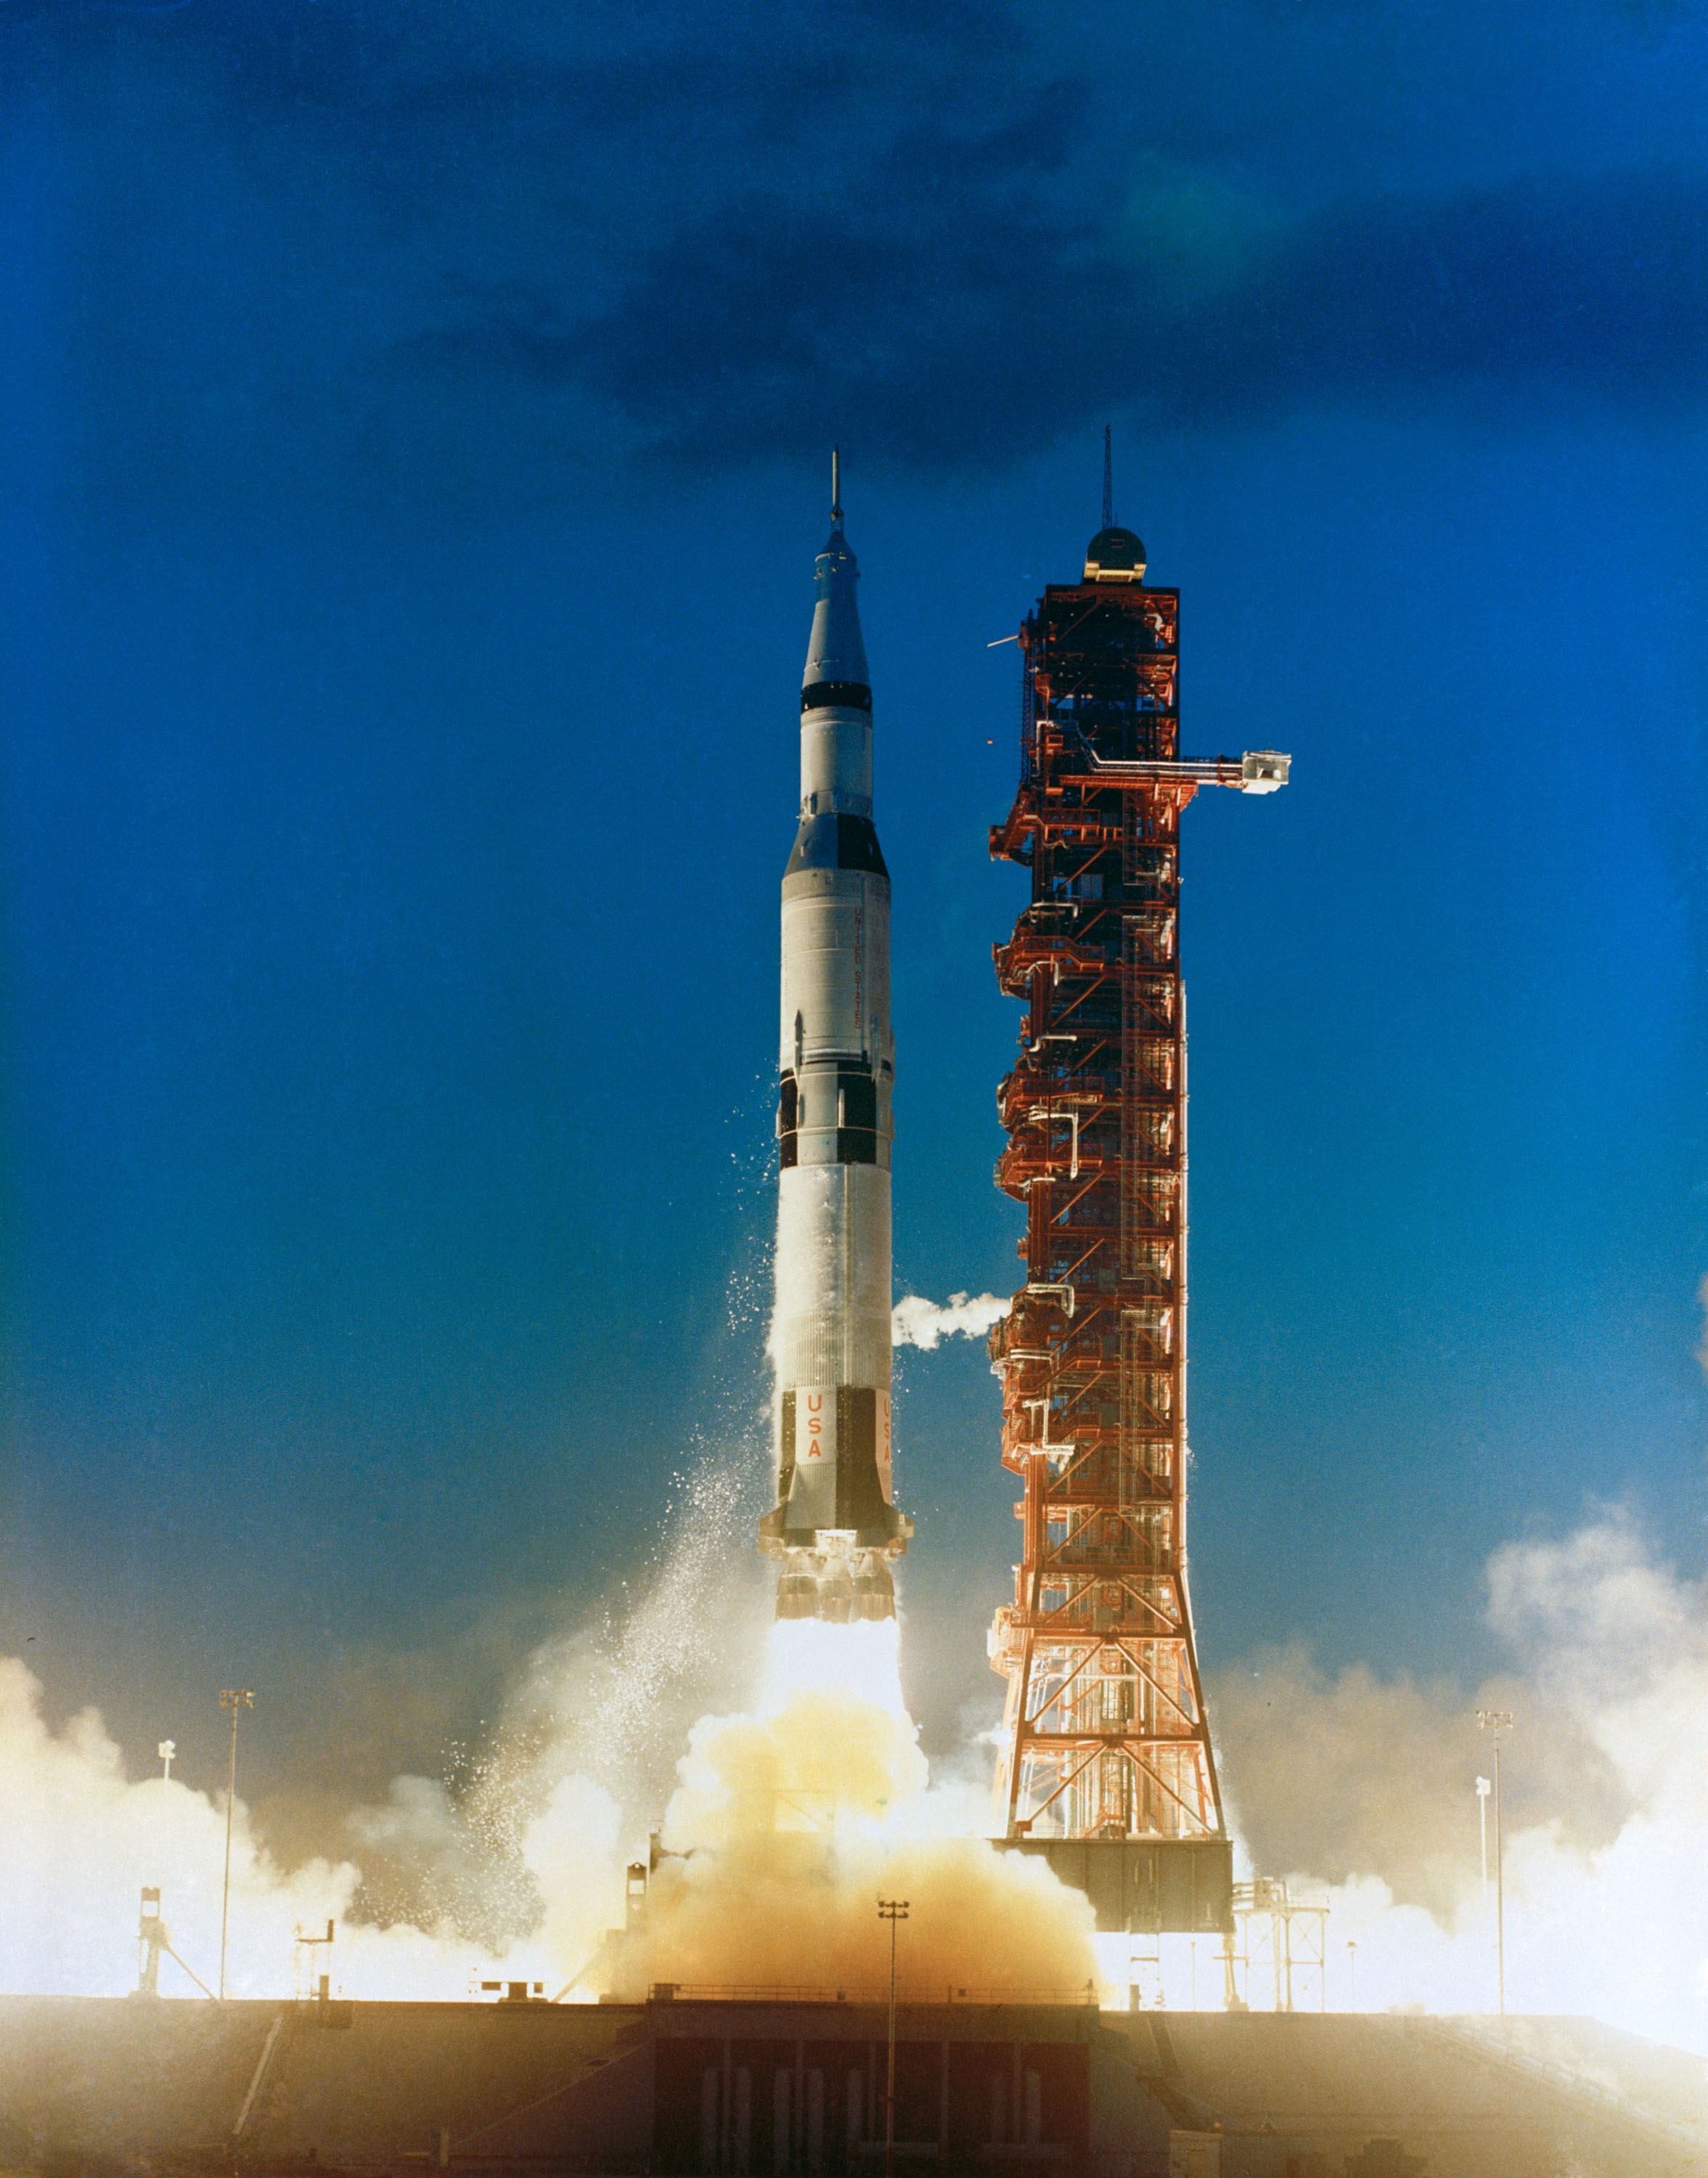 apollo space program facts - photo #13